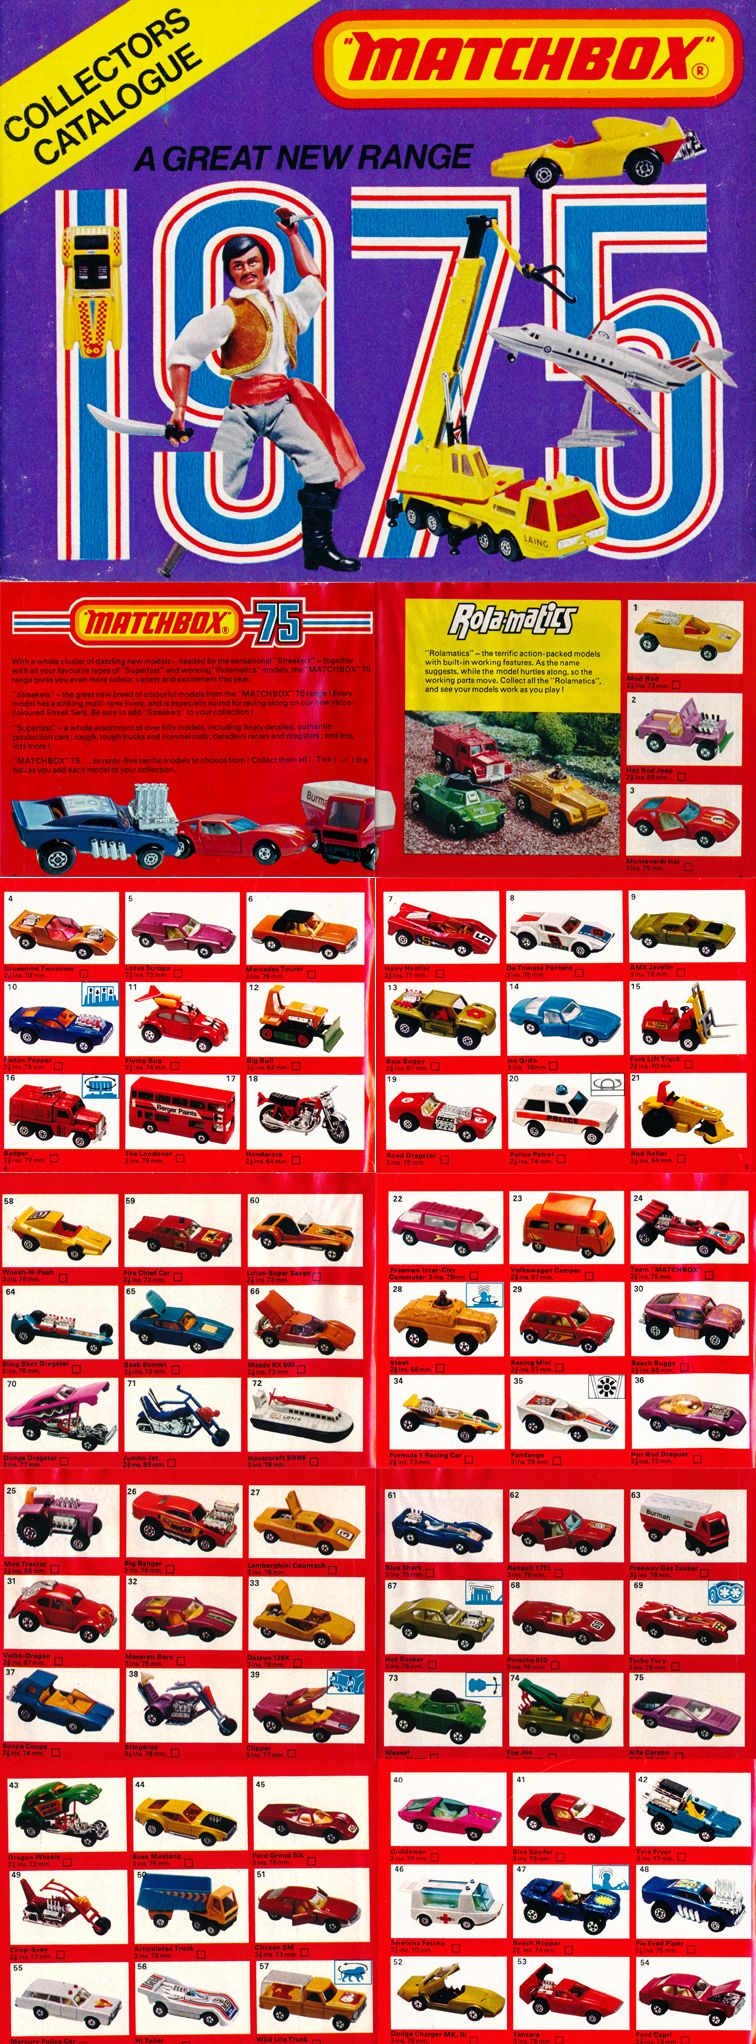 80s car toys  Matchbox catalogue   Collectible  Pinterest  Catalog Toy and